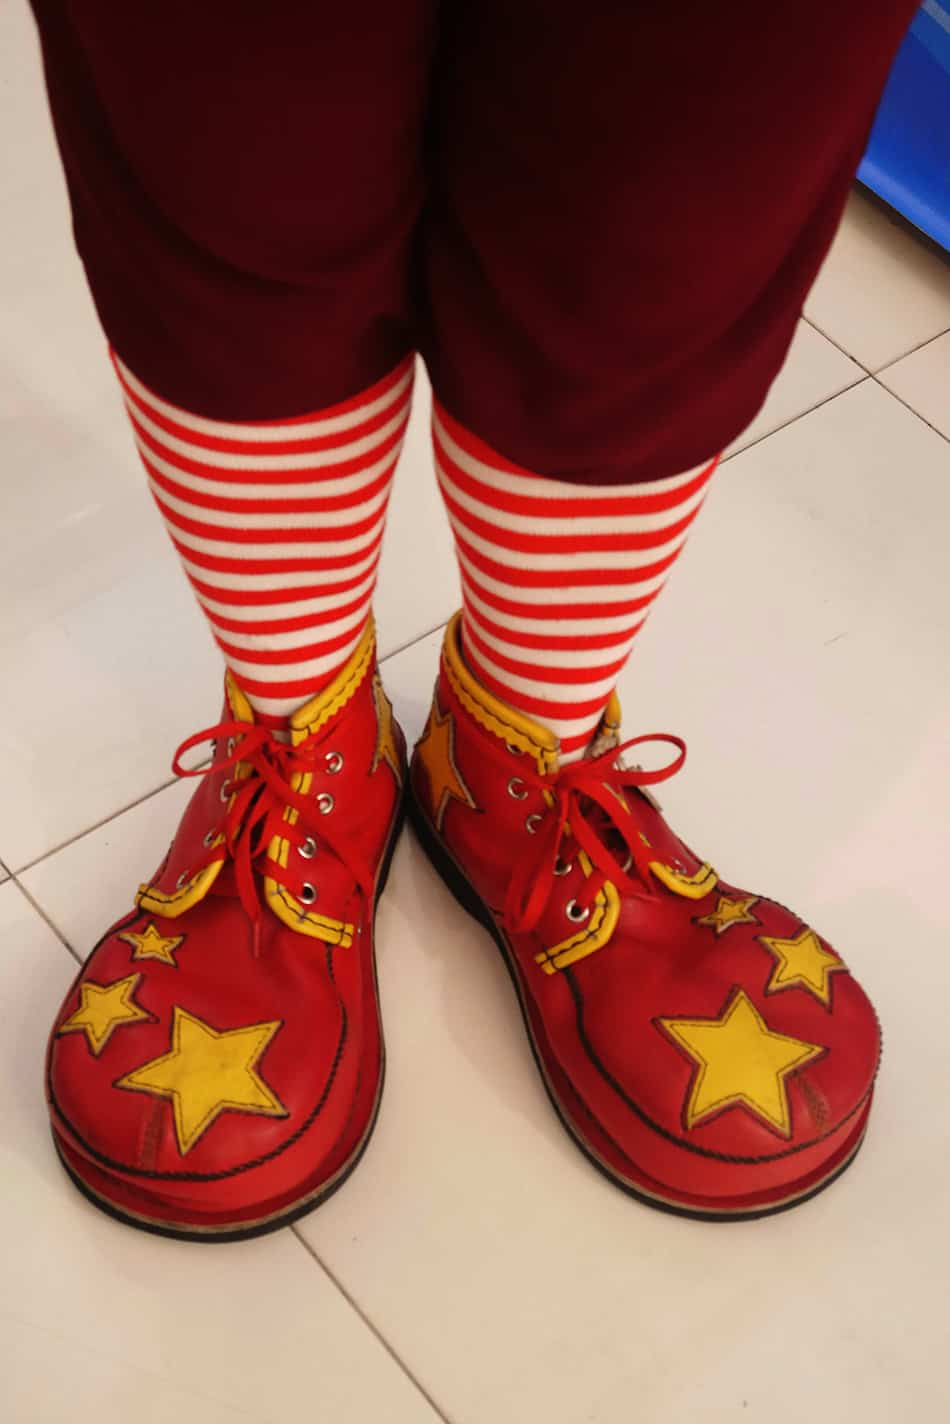 Dream of wearing clown shoes